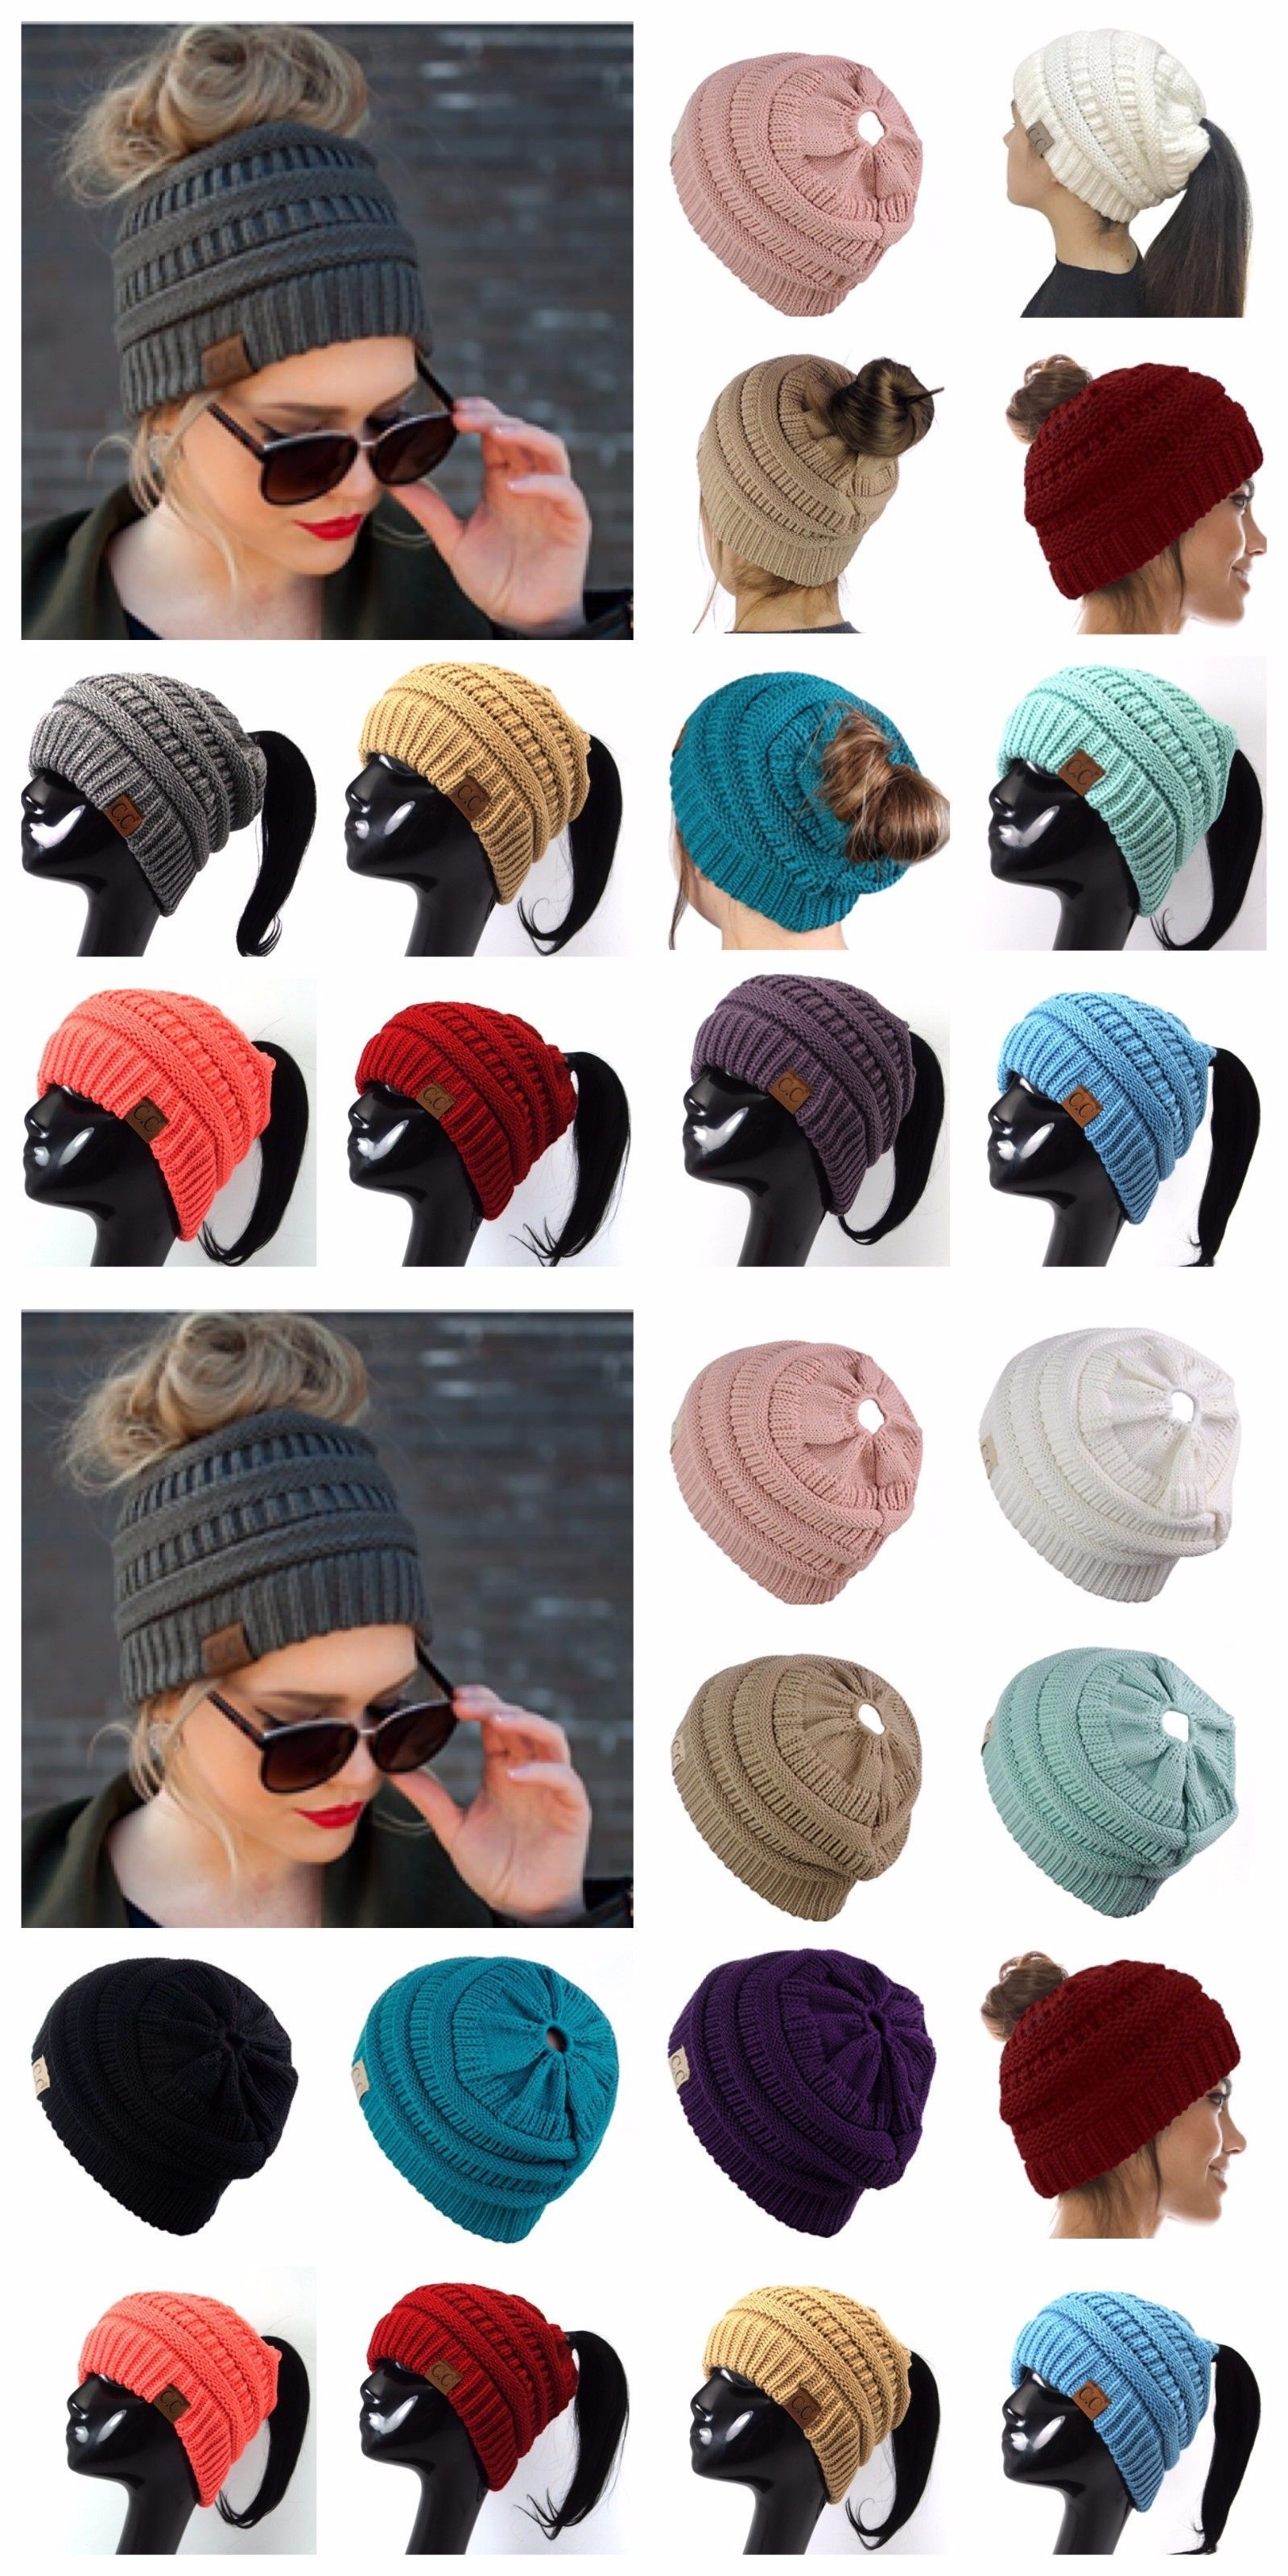 d1dbbf0080c Hats 45230  Women Cc Beanie Ponytail Hat Bubble Knit Fashion Winter Slouch  Hats Oversize -  BUY IT NOW ONLY   13.97 on  eBay  women  beanie  ponytail  ...